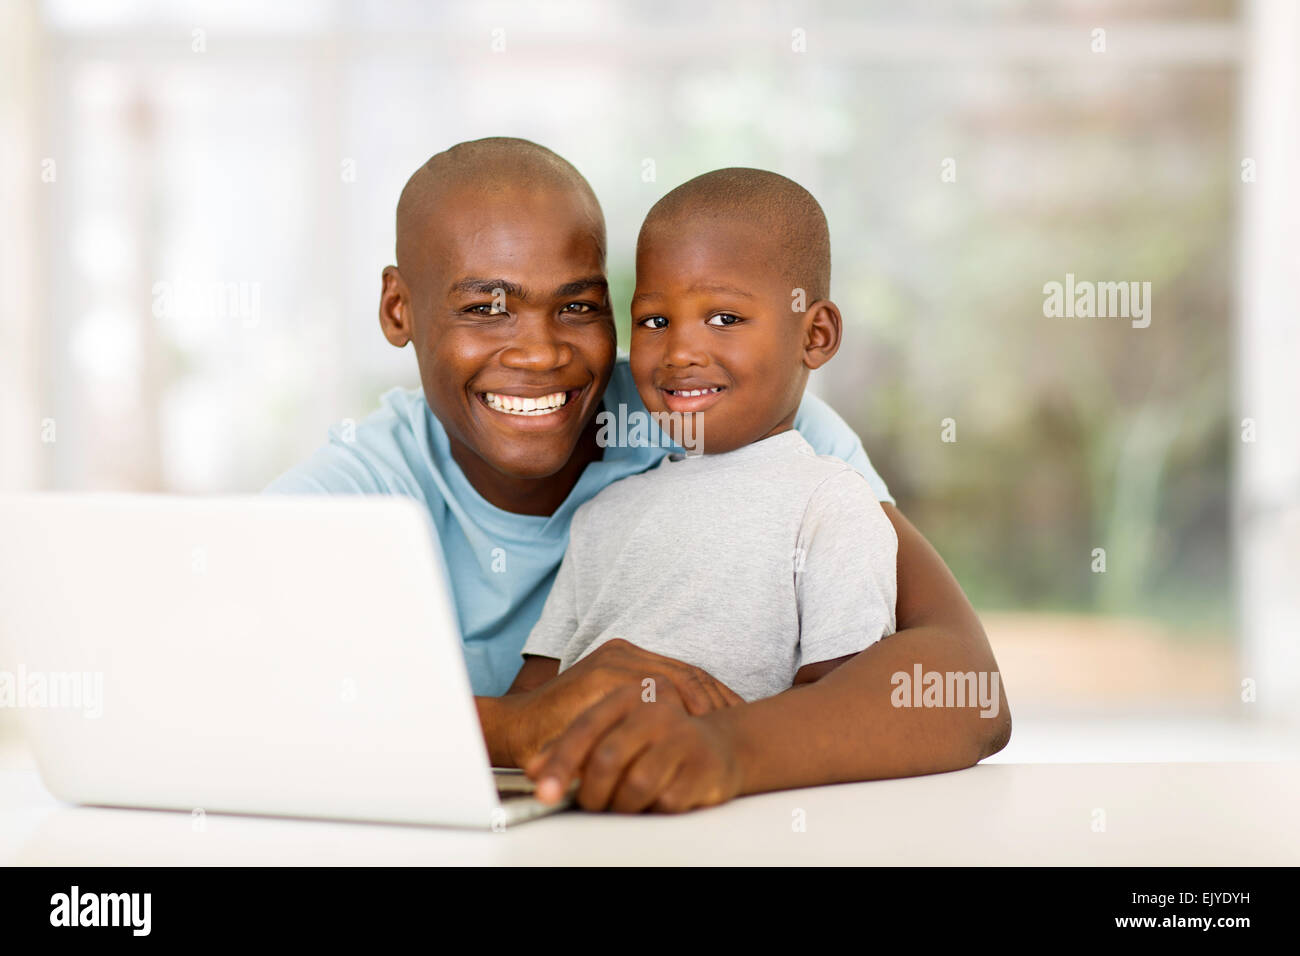 handsome young African man relaxing at home with his little boy - Stock Image